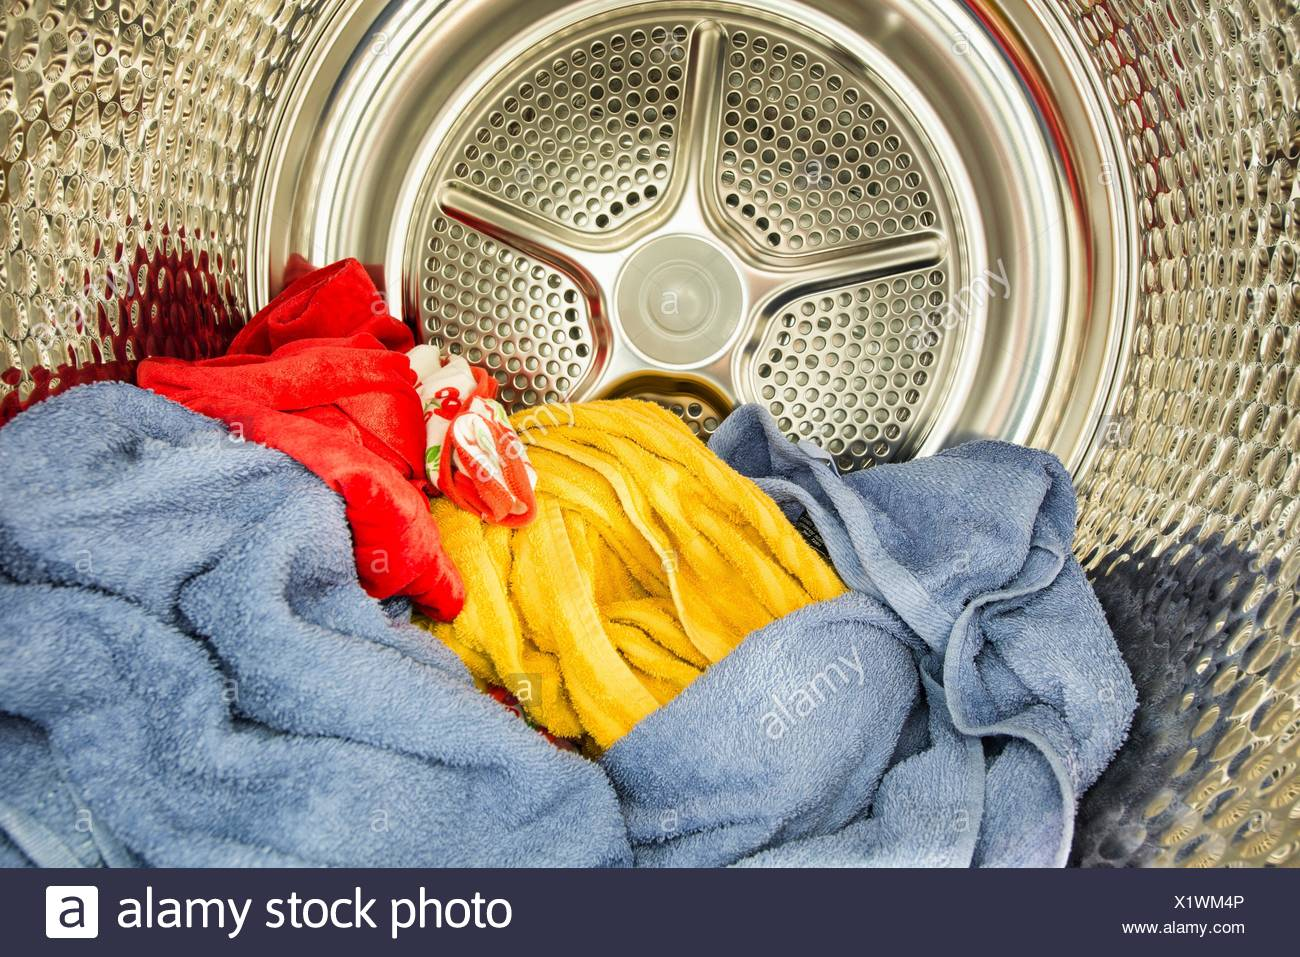 Interior view of tumble dryer with drying clothes. Conceptual image of housework and doing laundry. - Stock Image